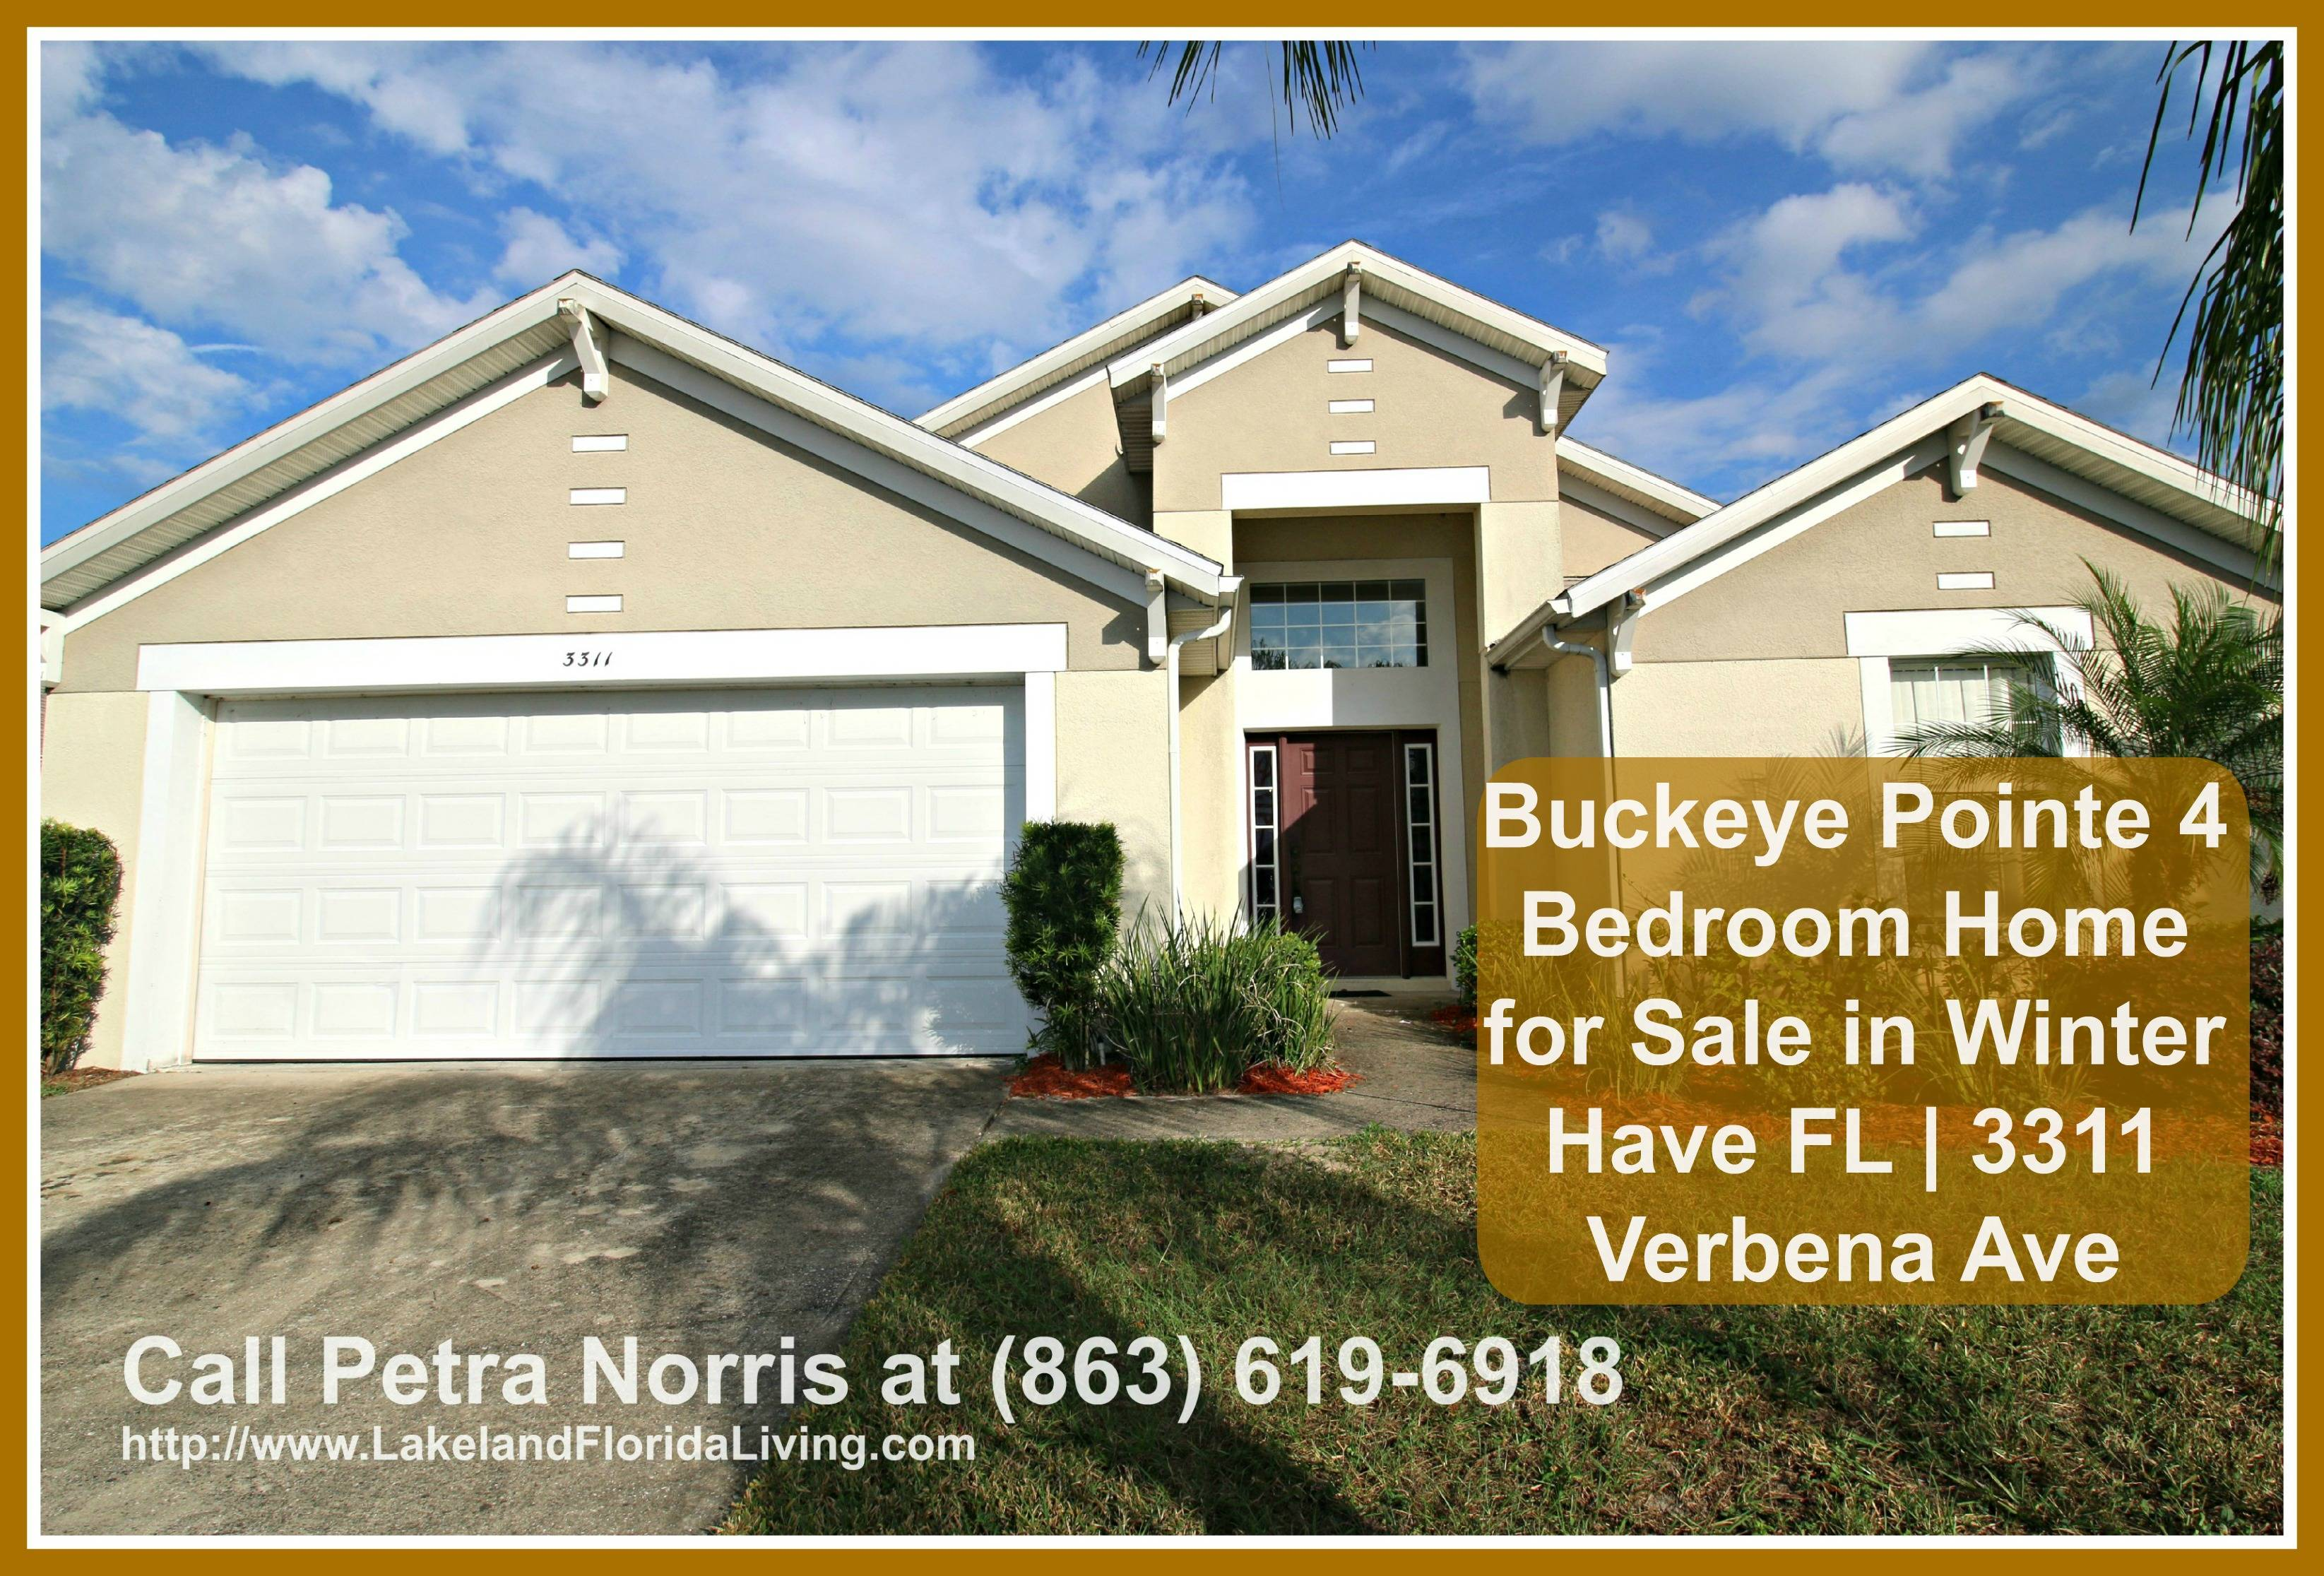 Built With 4 Spacious Bedrooms, 3 Full Baths, A Kitchen With New Appliances,